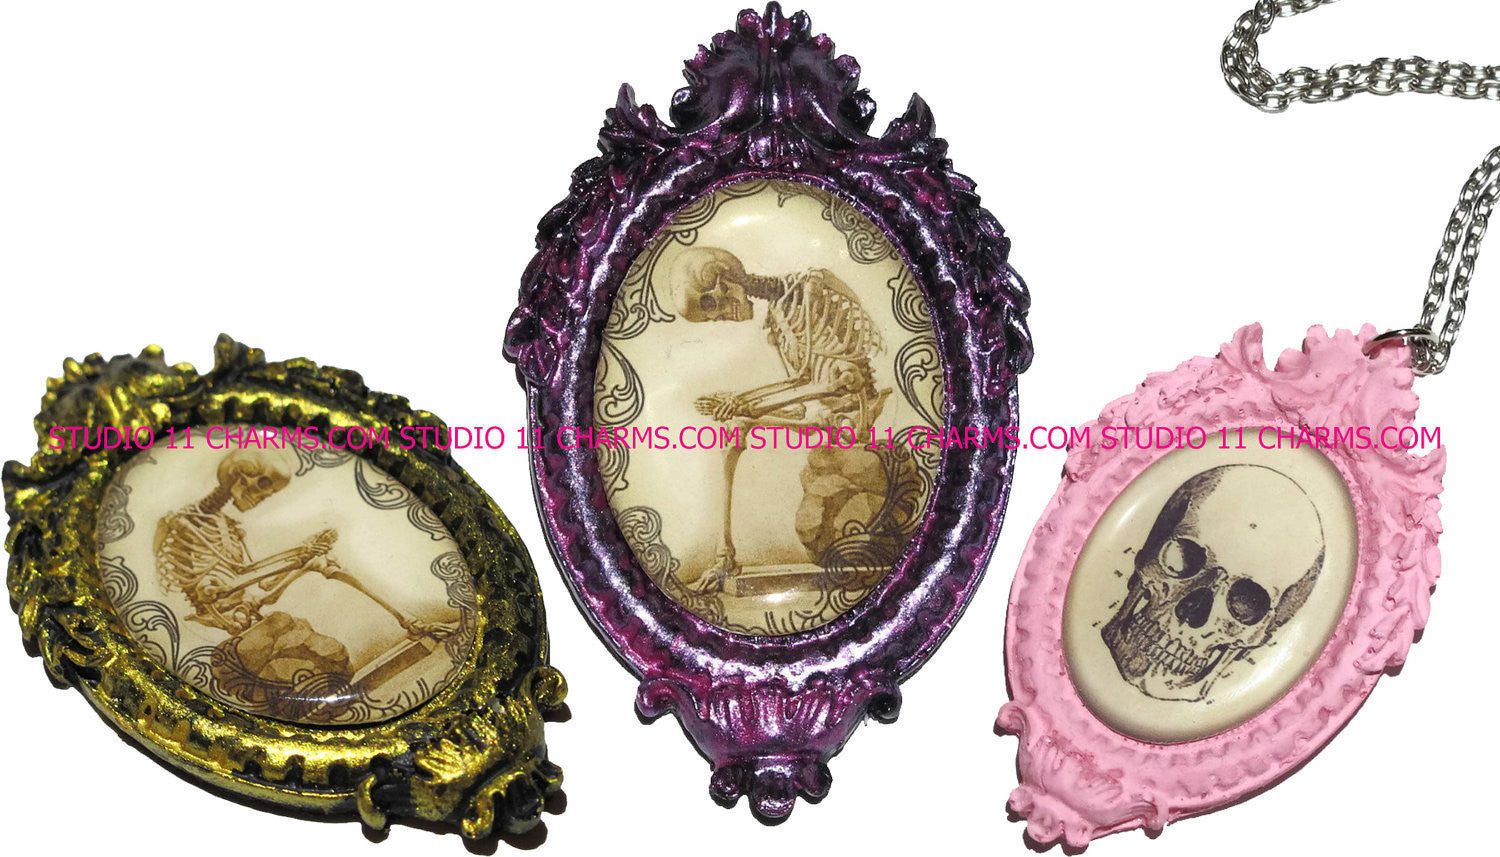 40x30, 18x25, 13X18 Resin Cameo LOW DOME Cabochon. Alfred Mucha 2